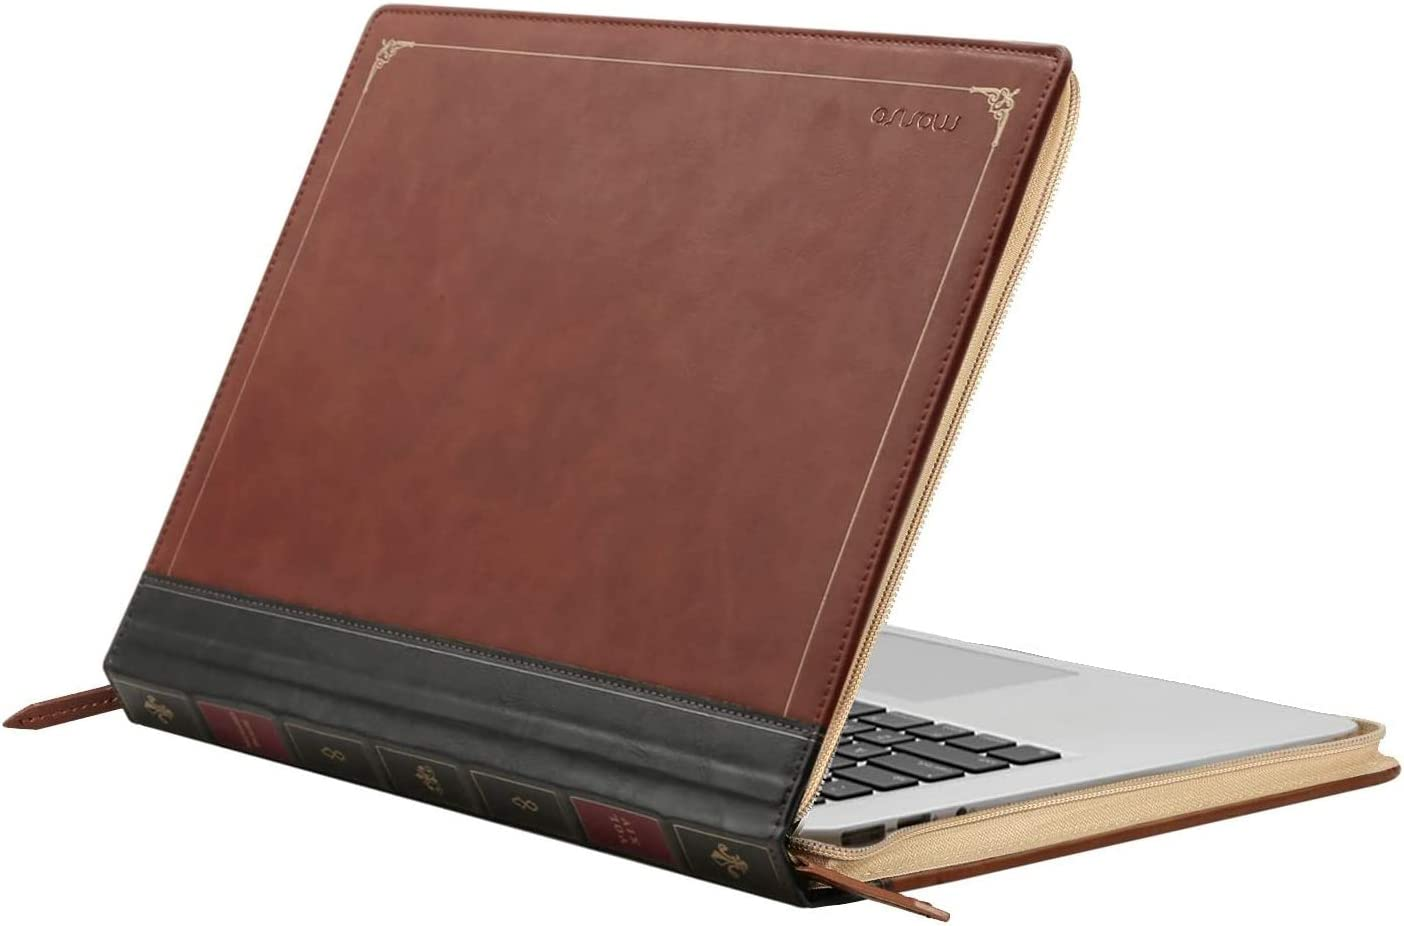 MOSISO MacBook Air 13 inch Case, PU Leather Laptop Sleeve Vintage Retro Zippered Book Folio Cover Compatible with MacBook Air 13 inch A1466/A1369 (Older Version Release 2010-2017), Brown